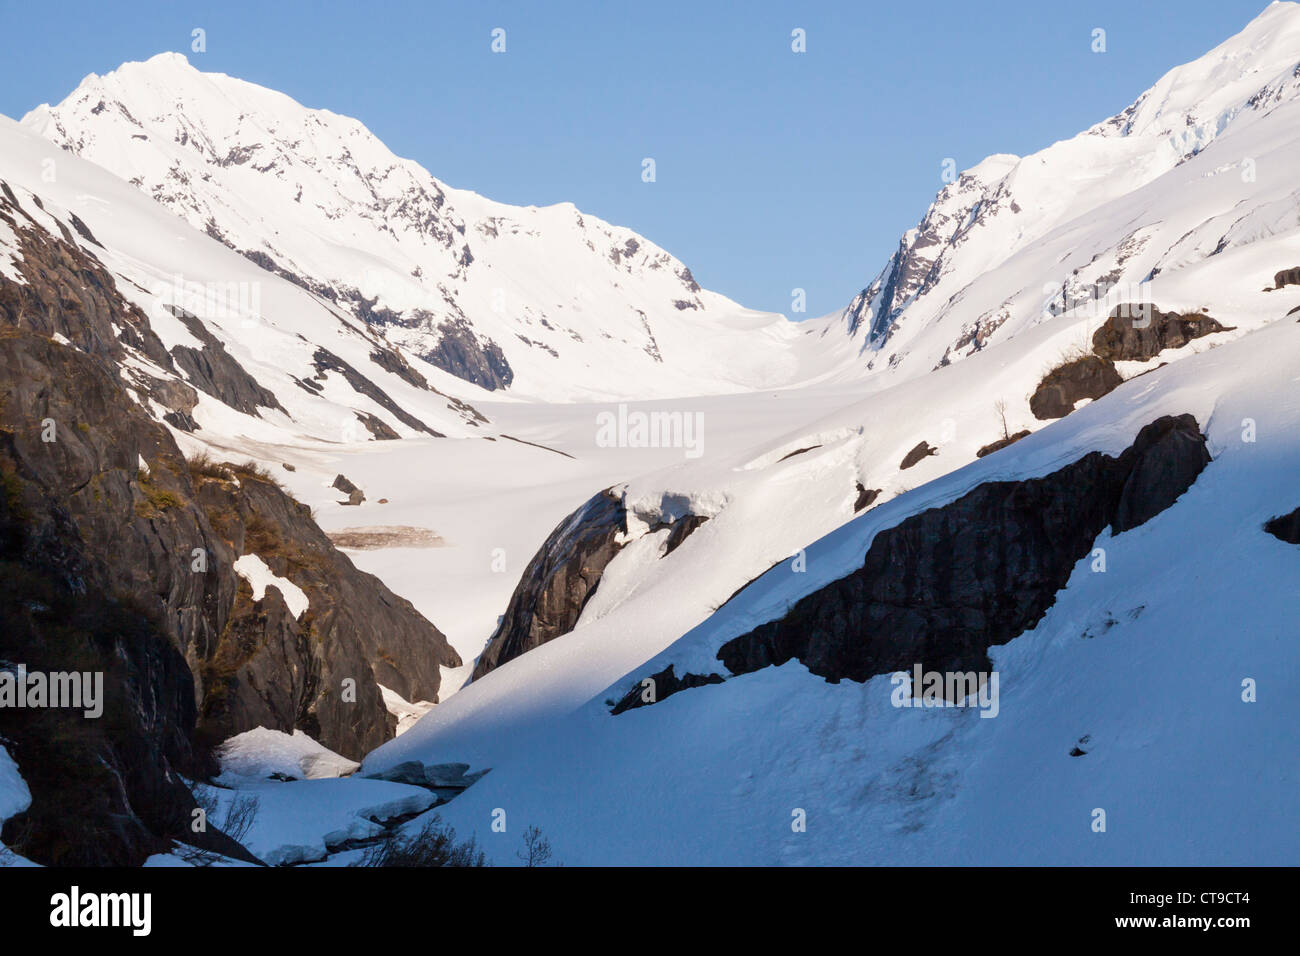 Bartlett Glacier in Alaska's Kenai Mountains - Stock Image